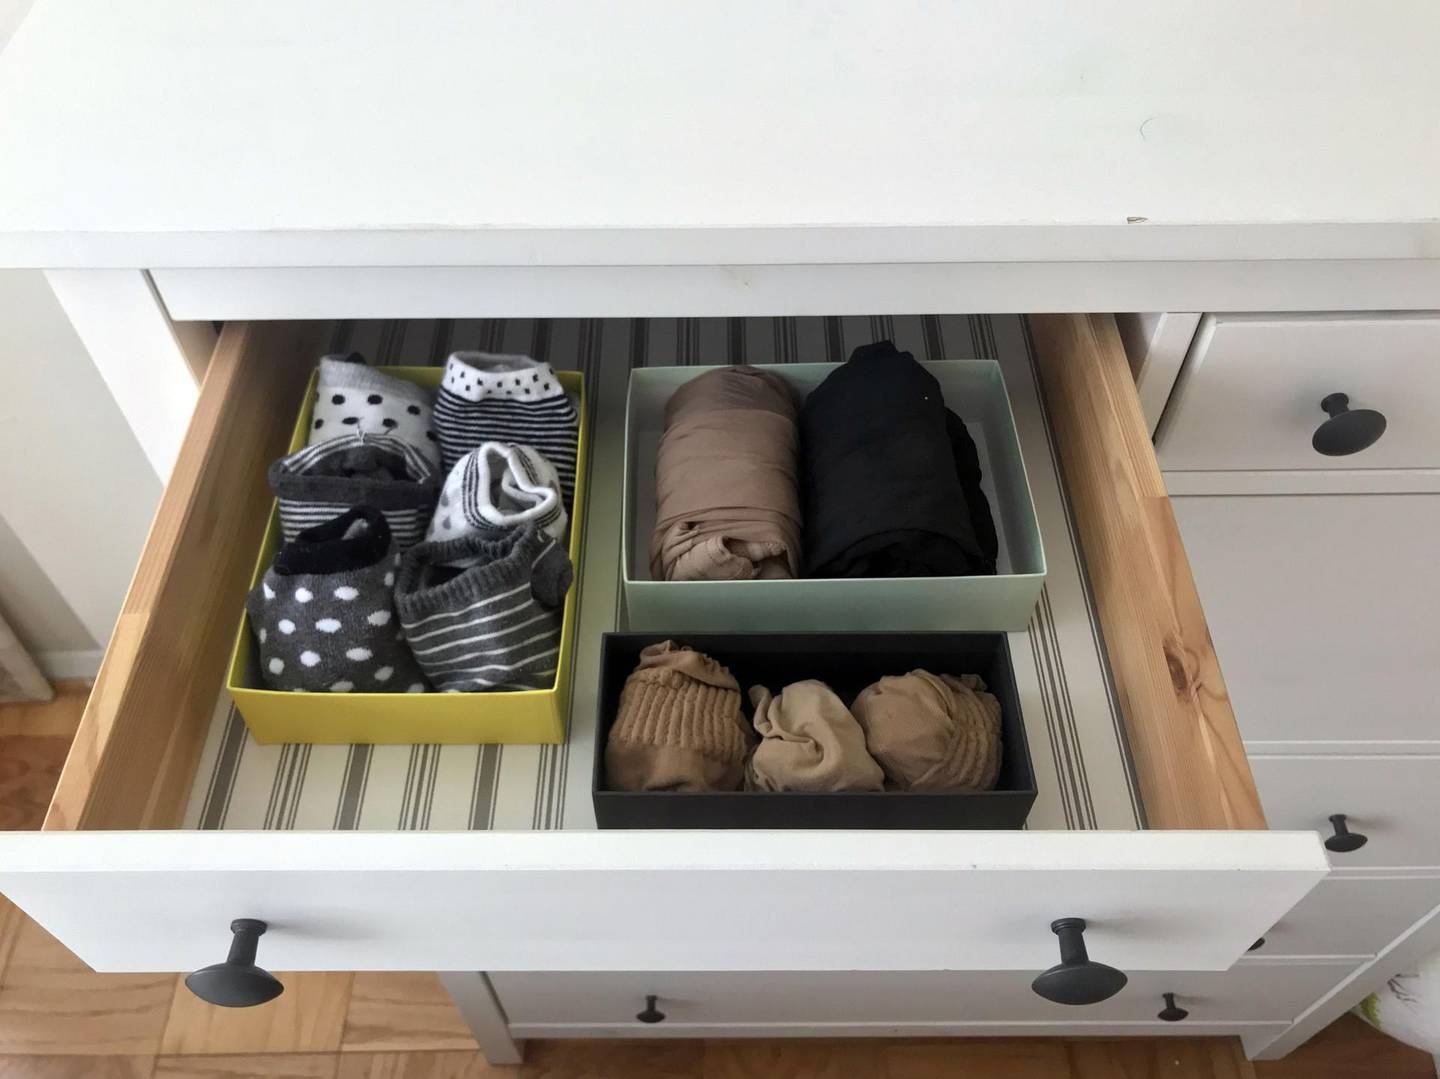 """Socks and tights are seen arranged in a drawer in small boxes at a home in Washington, DC, as recommended by Japanese tidying expert Marie Kondo, creator of the """"KonMari"""" method, on January 18, 2019. Marie Kondo is small of stature, but her tidying philosophy has reached stratospheric heights. Her book, """"The Life Changing Magic of Tidying Up,"""" has earned a cult following since its publication in the US in 2014 -- but it is the 34-year-old's new Netflix show, """"Tidying up with Marie Kondo"""" that has everyone talking. / AFP / Sara KAMOUNI / TO GO WITH AFP STORY by Sara KAMOUNI, """"Japanese tidying guru sparks joy with cluttered Americans"""""""